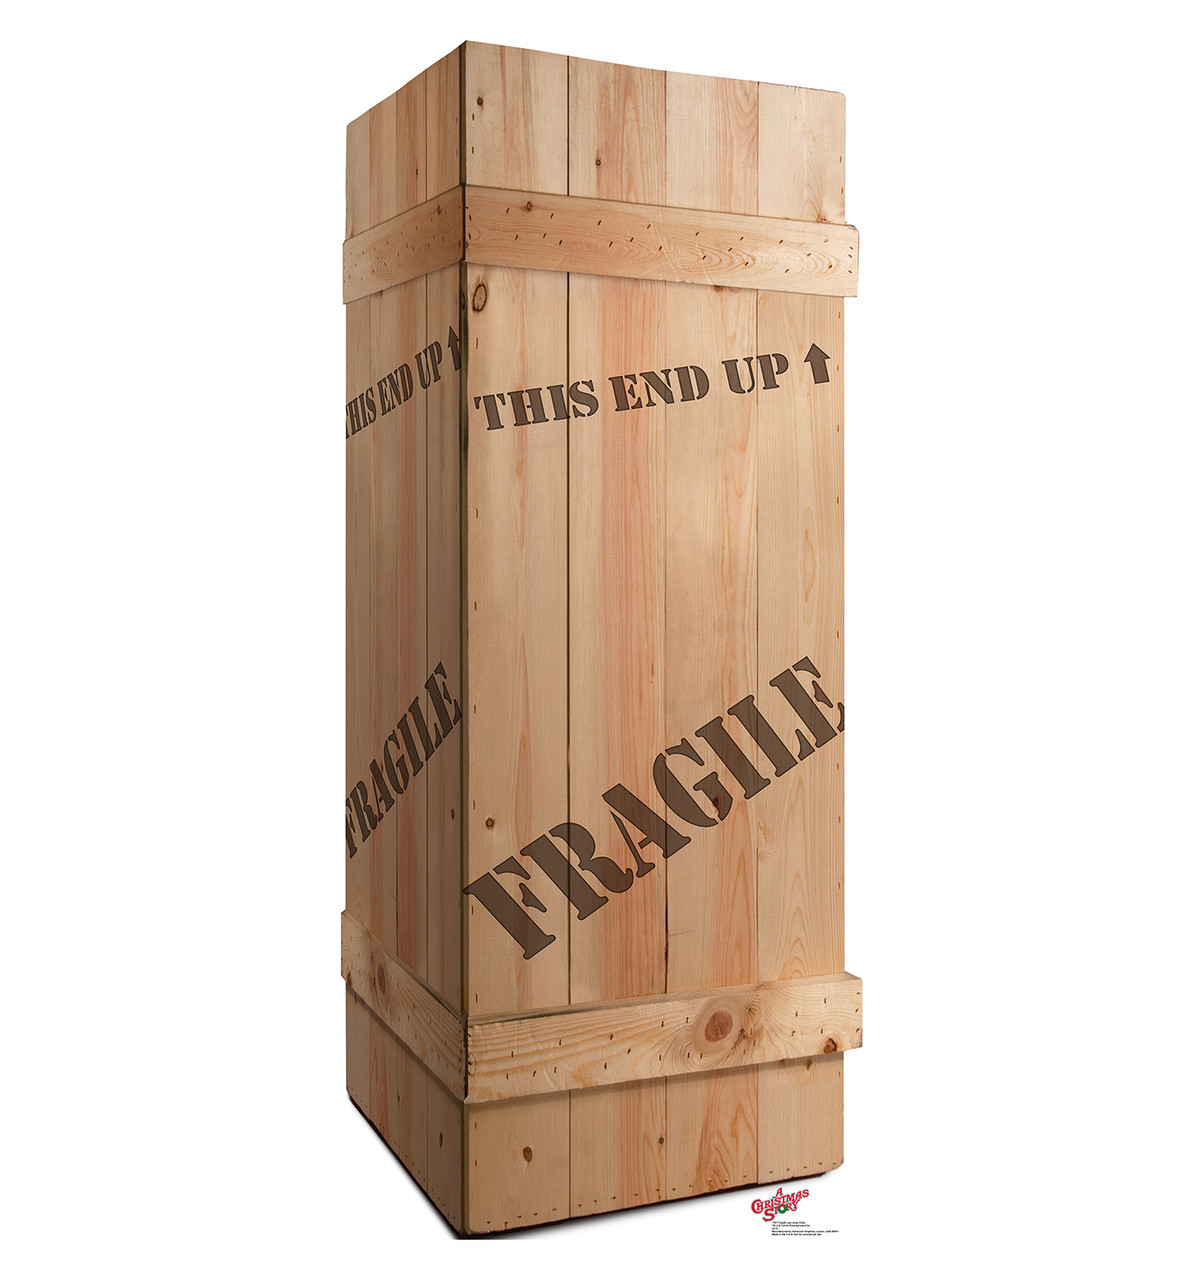 Life-size Fragile Leg Lamp Crate - A Christmas Story Cardboard Standup